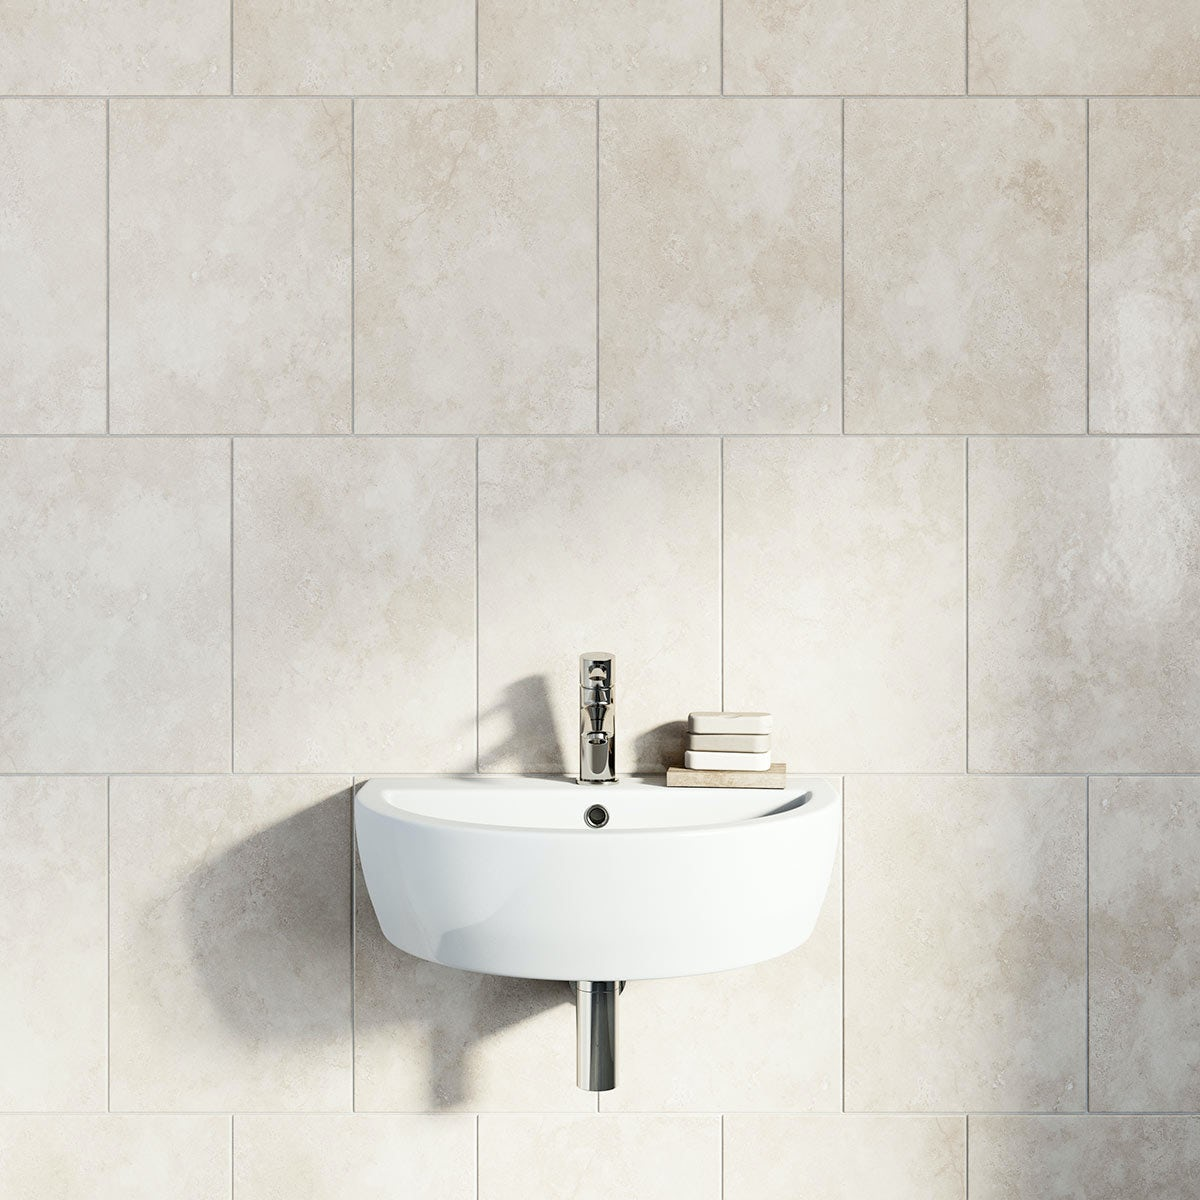 British Ceramic Tile Earth stone beige gloss tile 300mm x 416mm